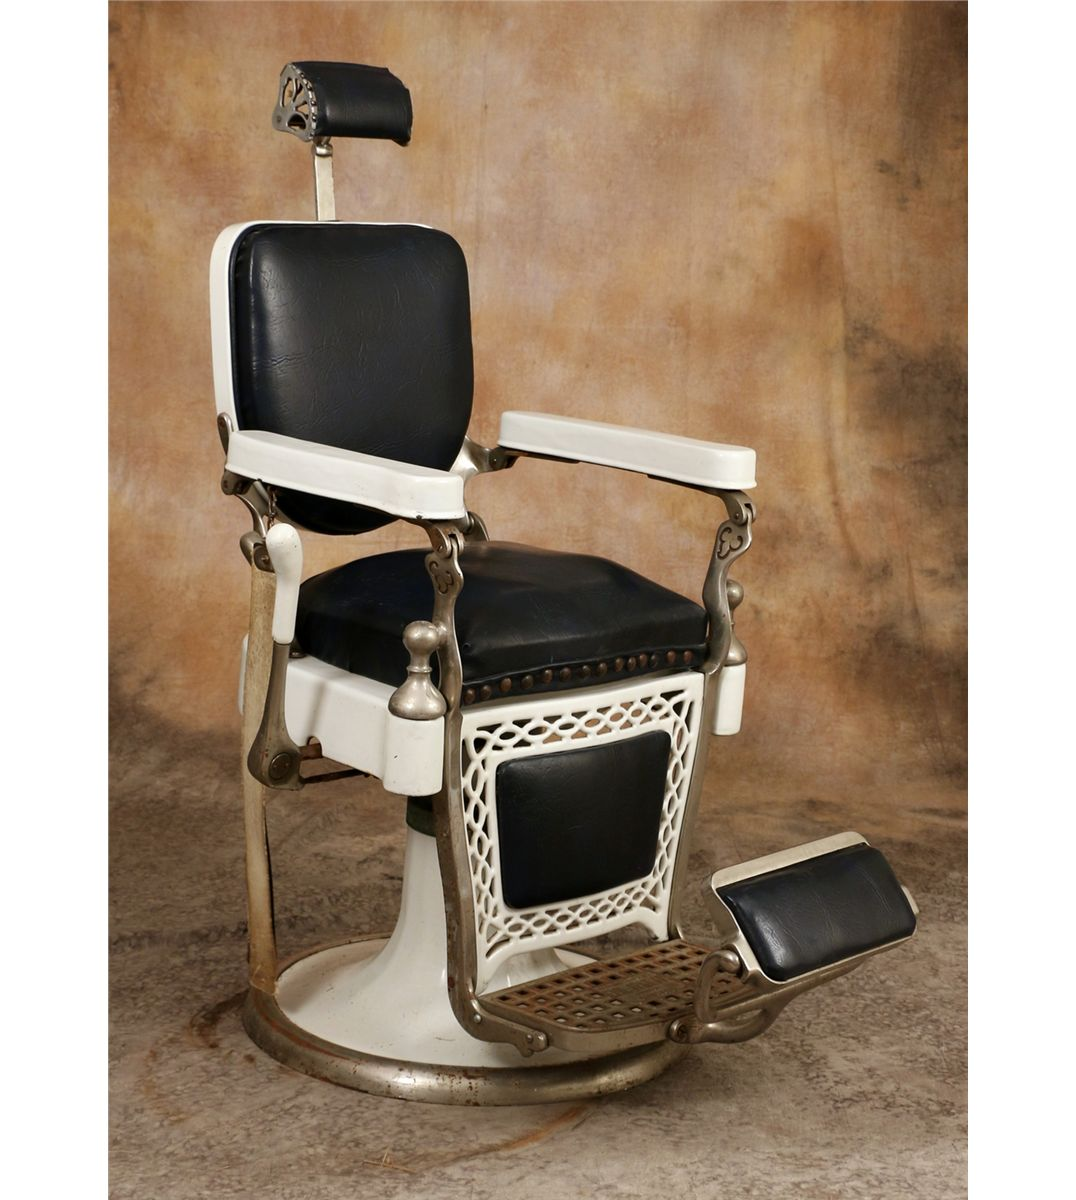 Vintage Emil J Paidar Barber Chair Loading Zoom